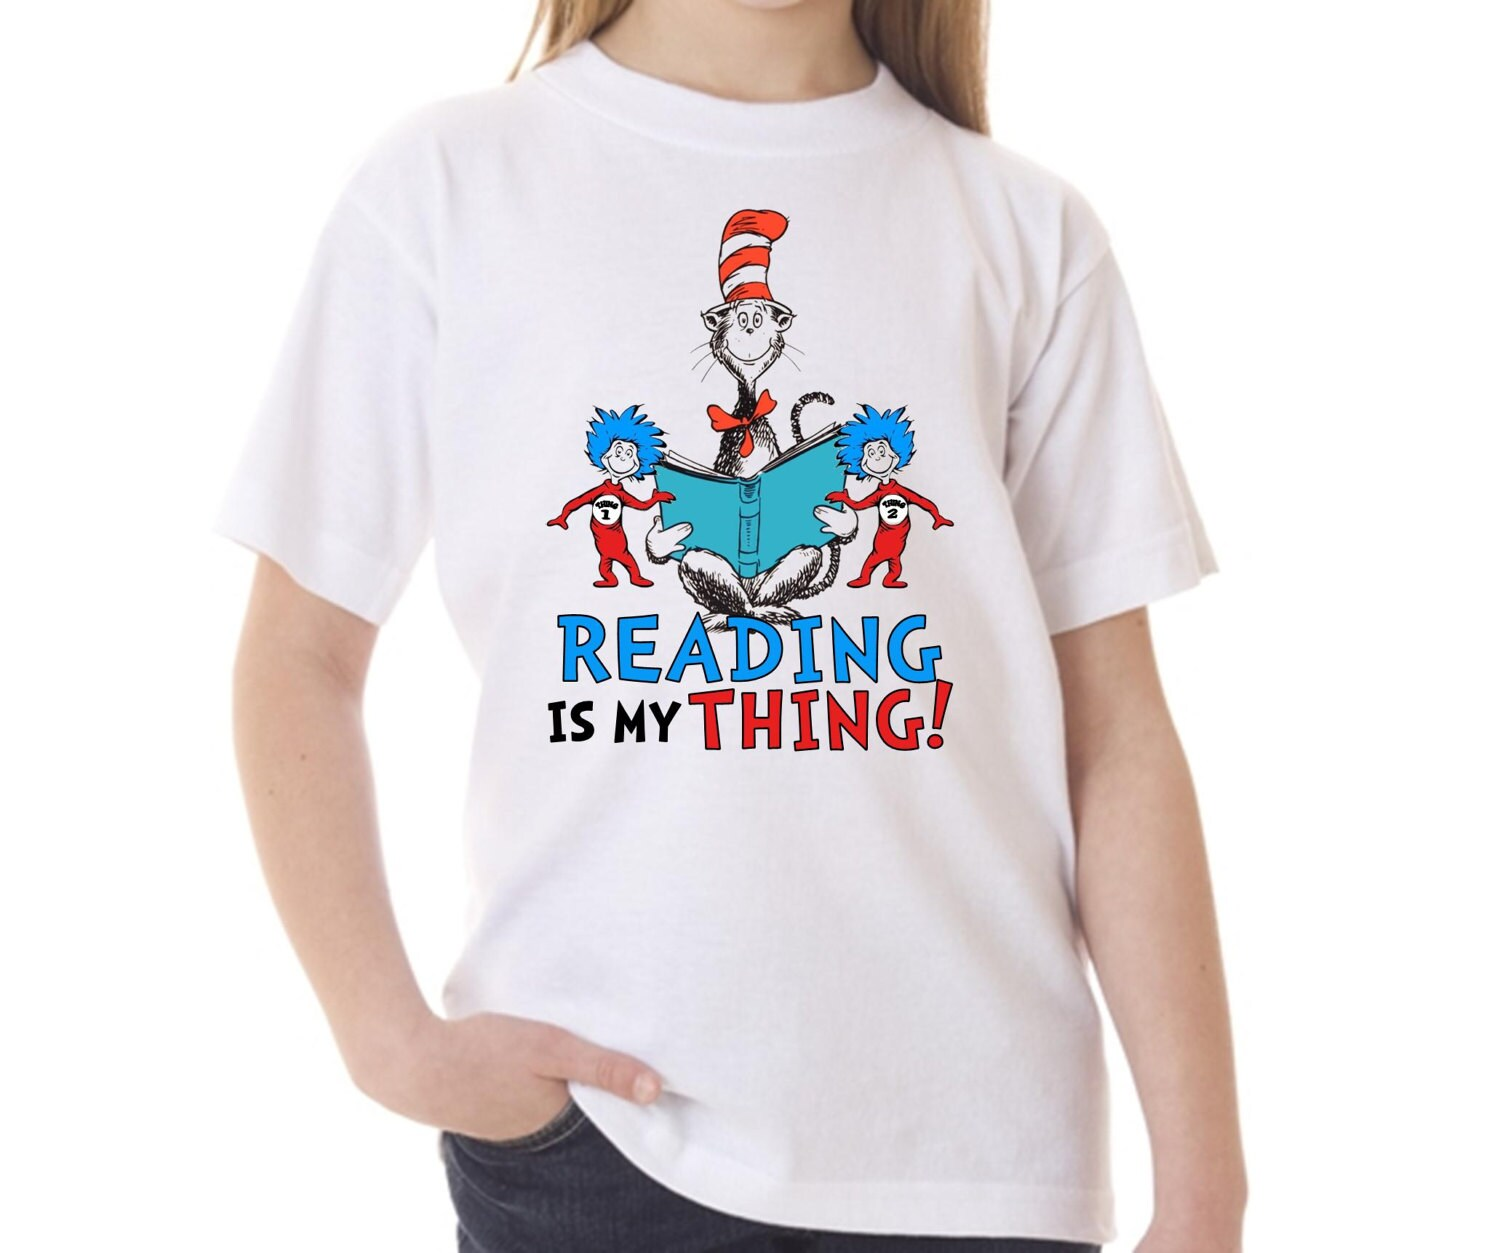 Design your own t shirt birmingham